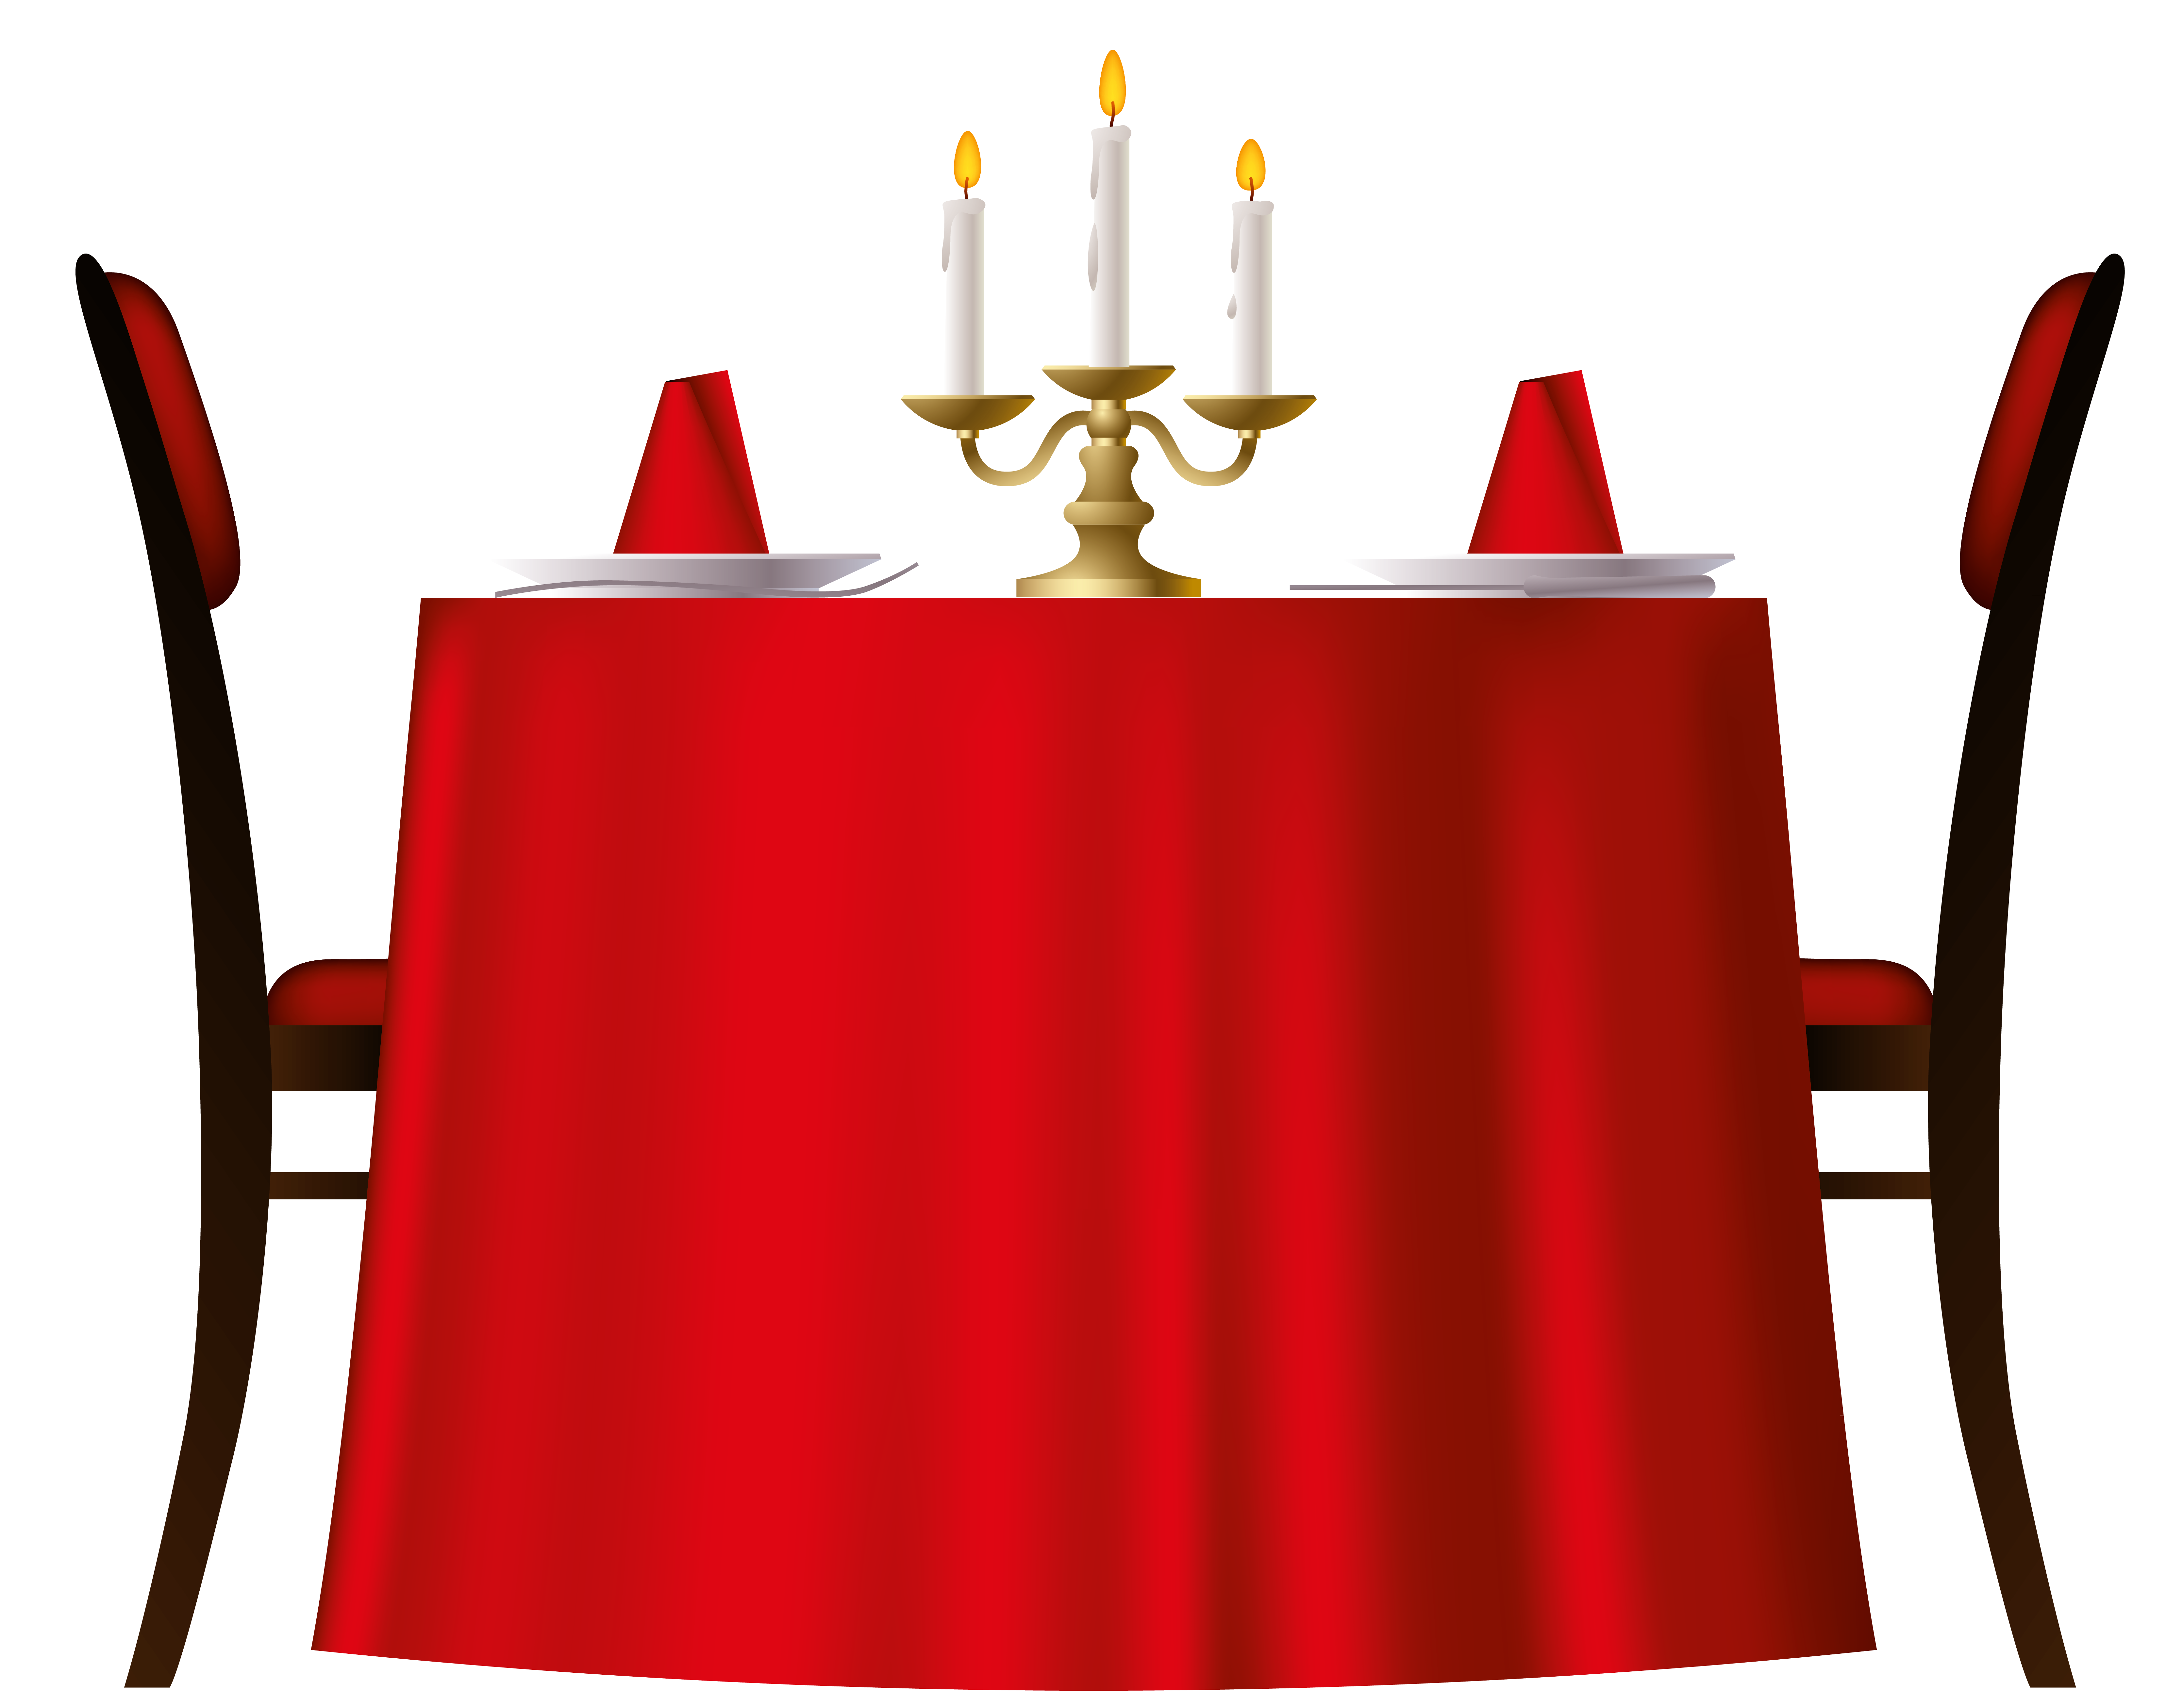 jpg free stock Red table png image. Transparent candle romantic